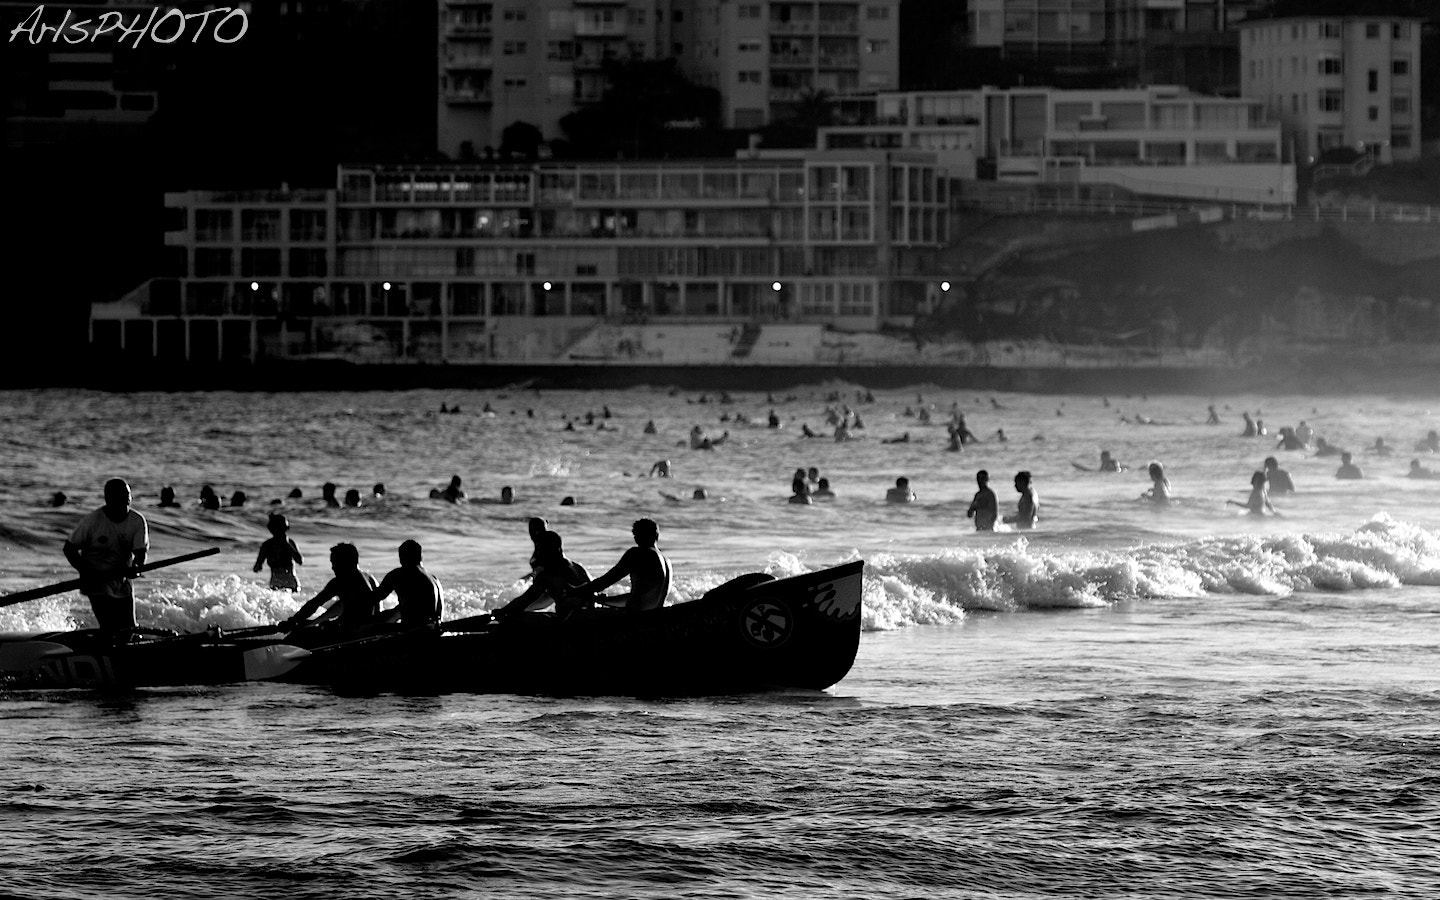 Photograph Row Row Row your boat by Adam Smith on 500px